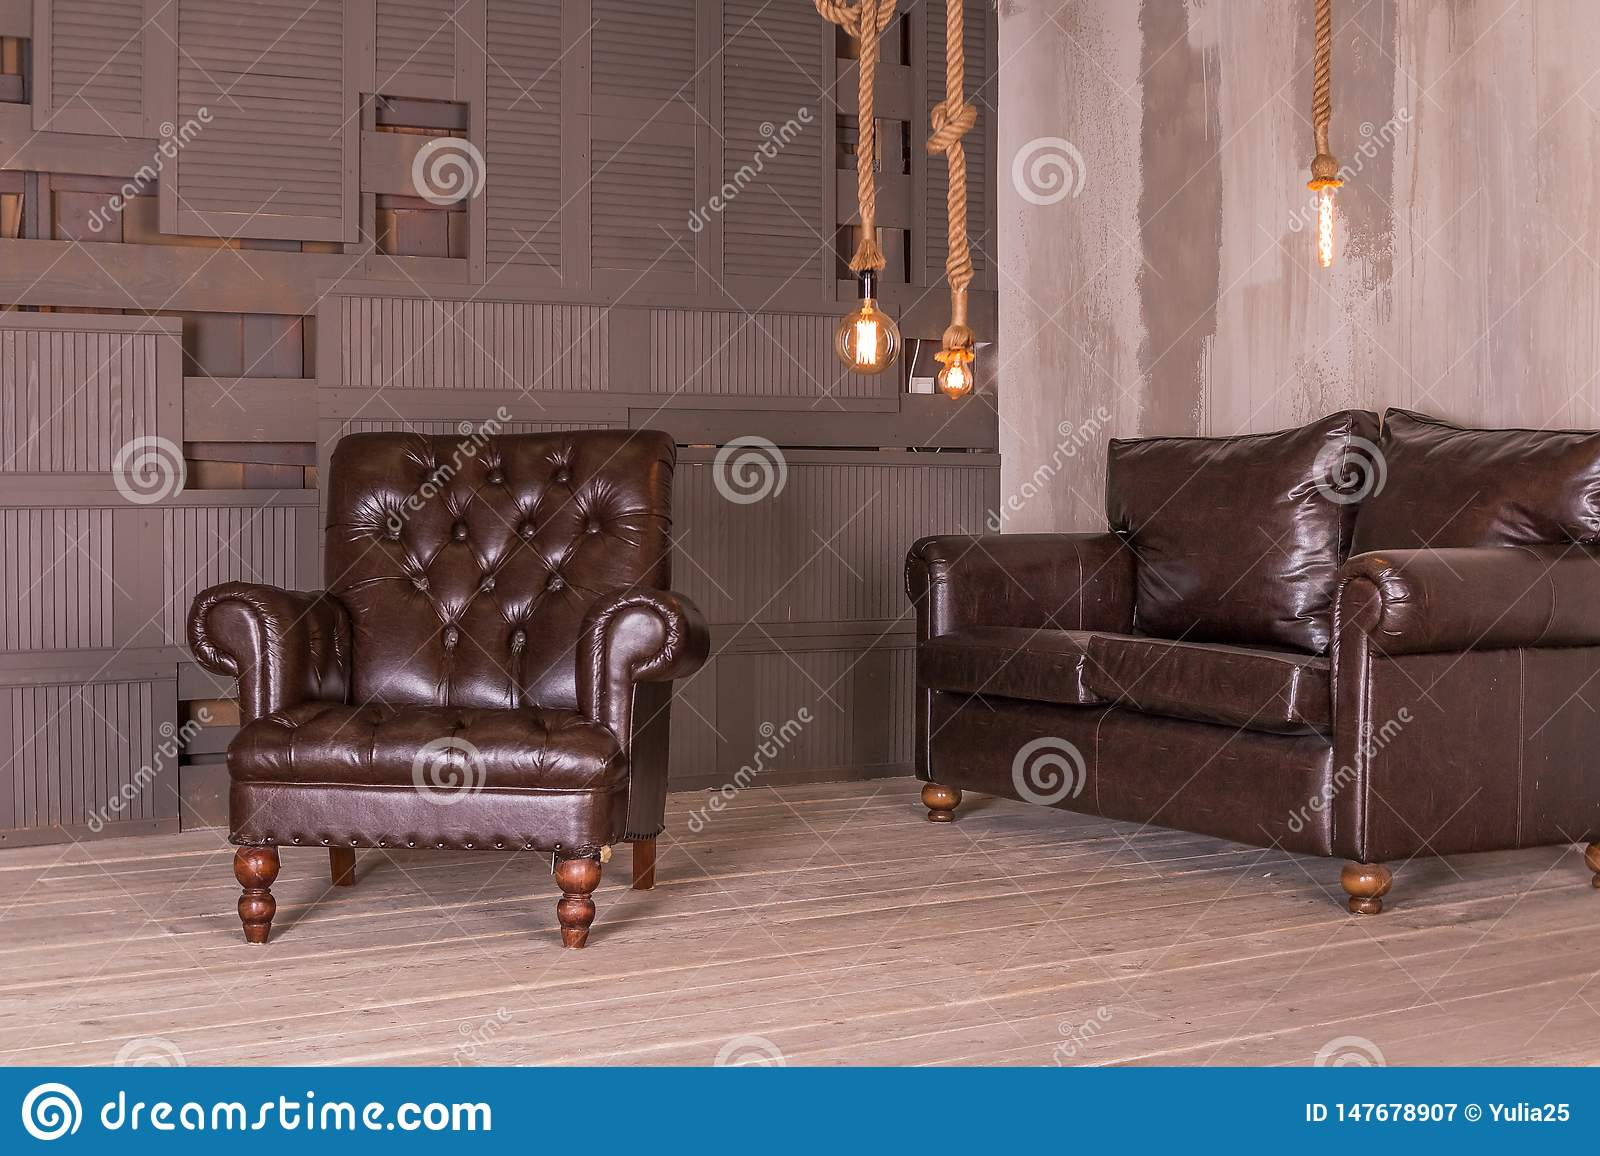 Brown Leather Armchair And Vintage Leather Sofa Interior Composition Retro Furniture Creative Design Copy Space Image Stock Image Du Design Space 147678907